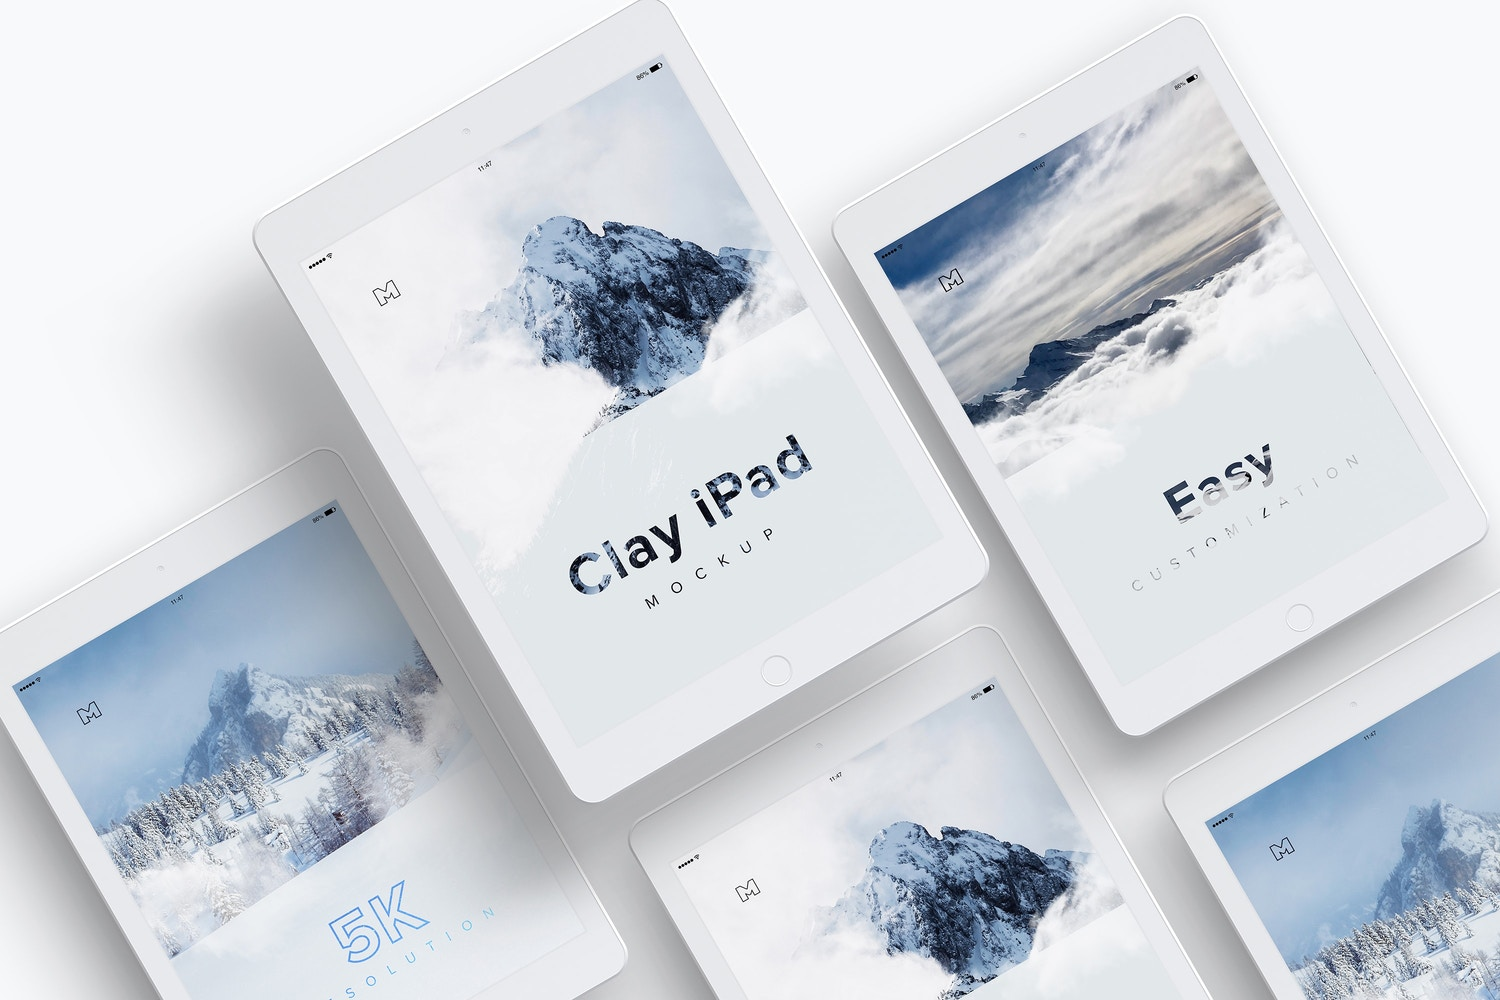 Clay iPad 9.7 Mockup 07 by Original Mockups on Original Mockups